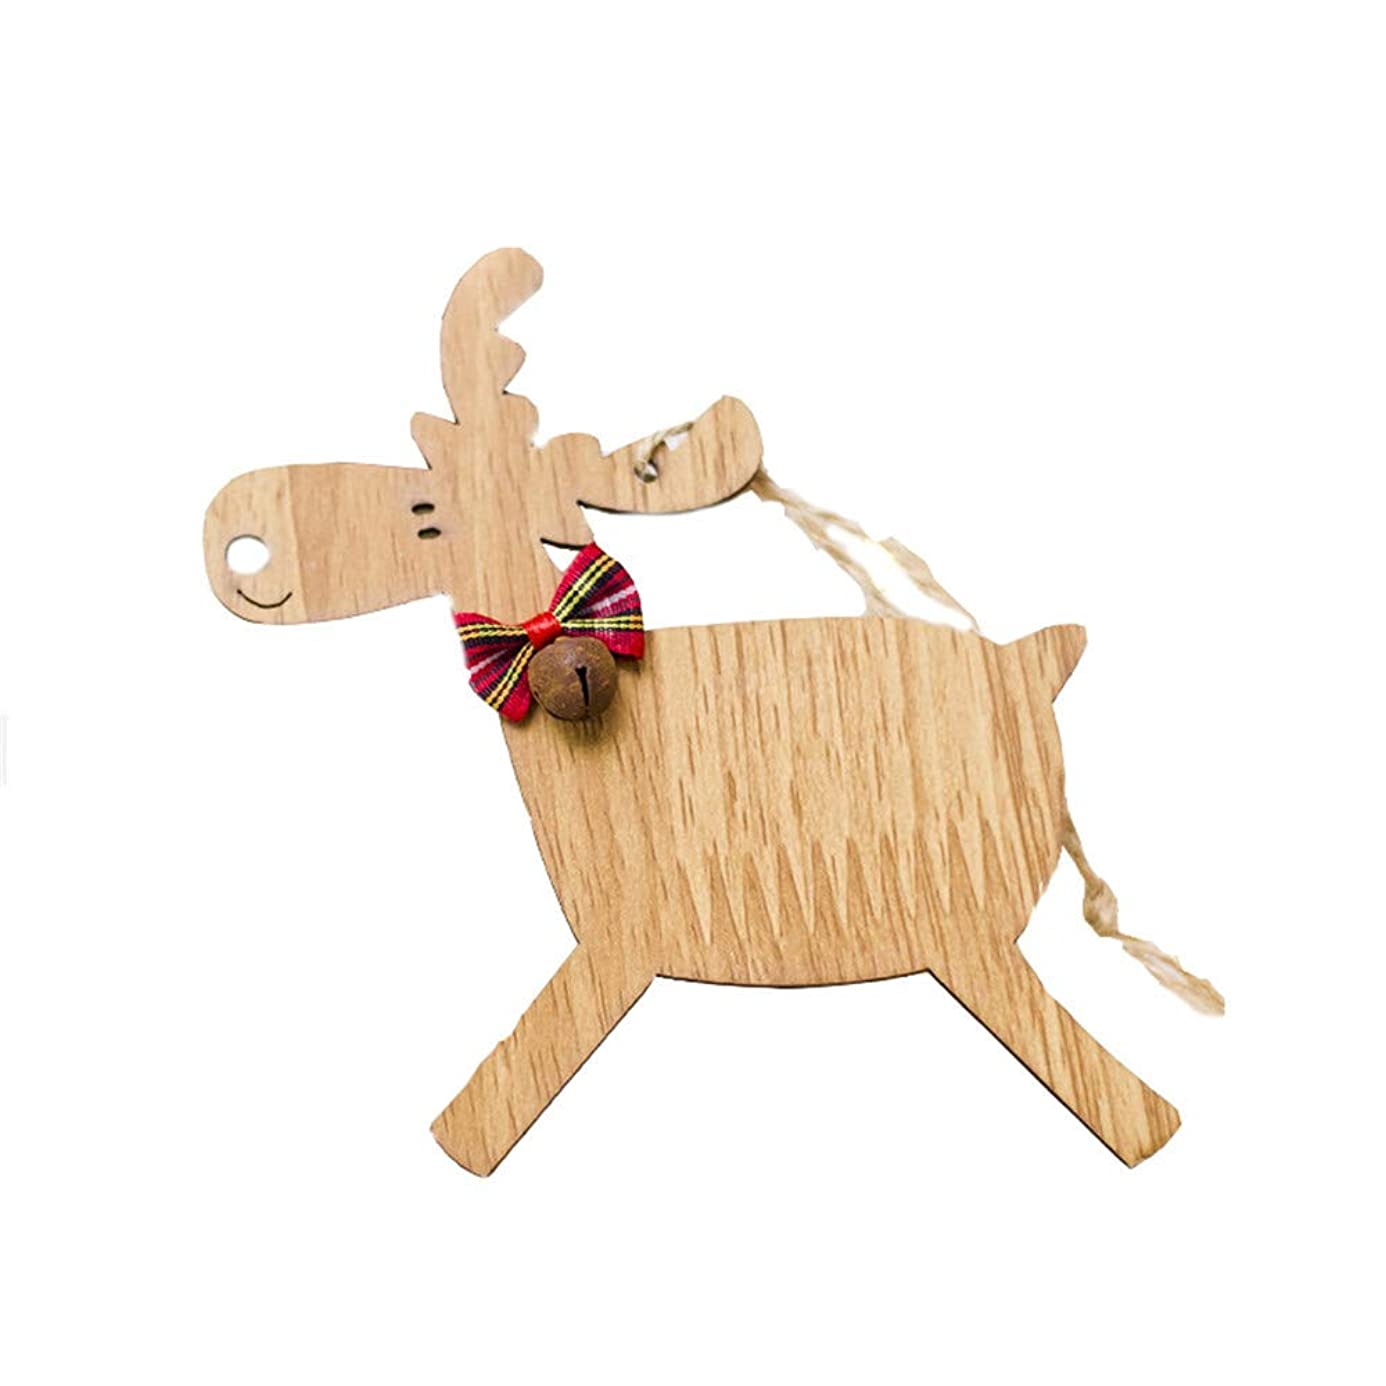 Iusun Christmas Tree Decorations Deer Wooden Hanging Xmas Tree Pendants DIY Ornament Wedding Party Holiday Decor